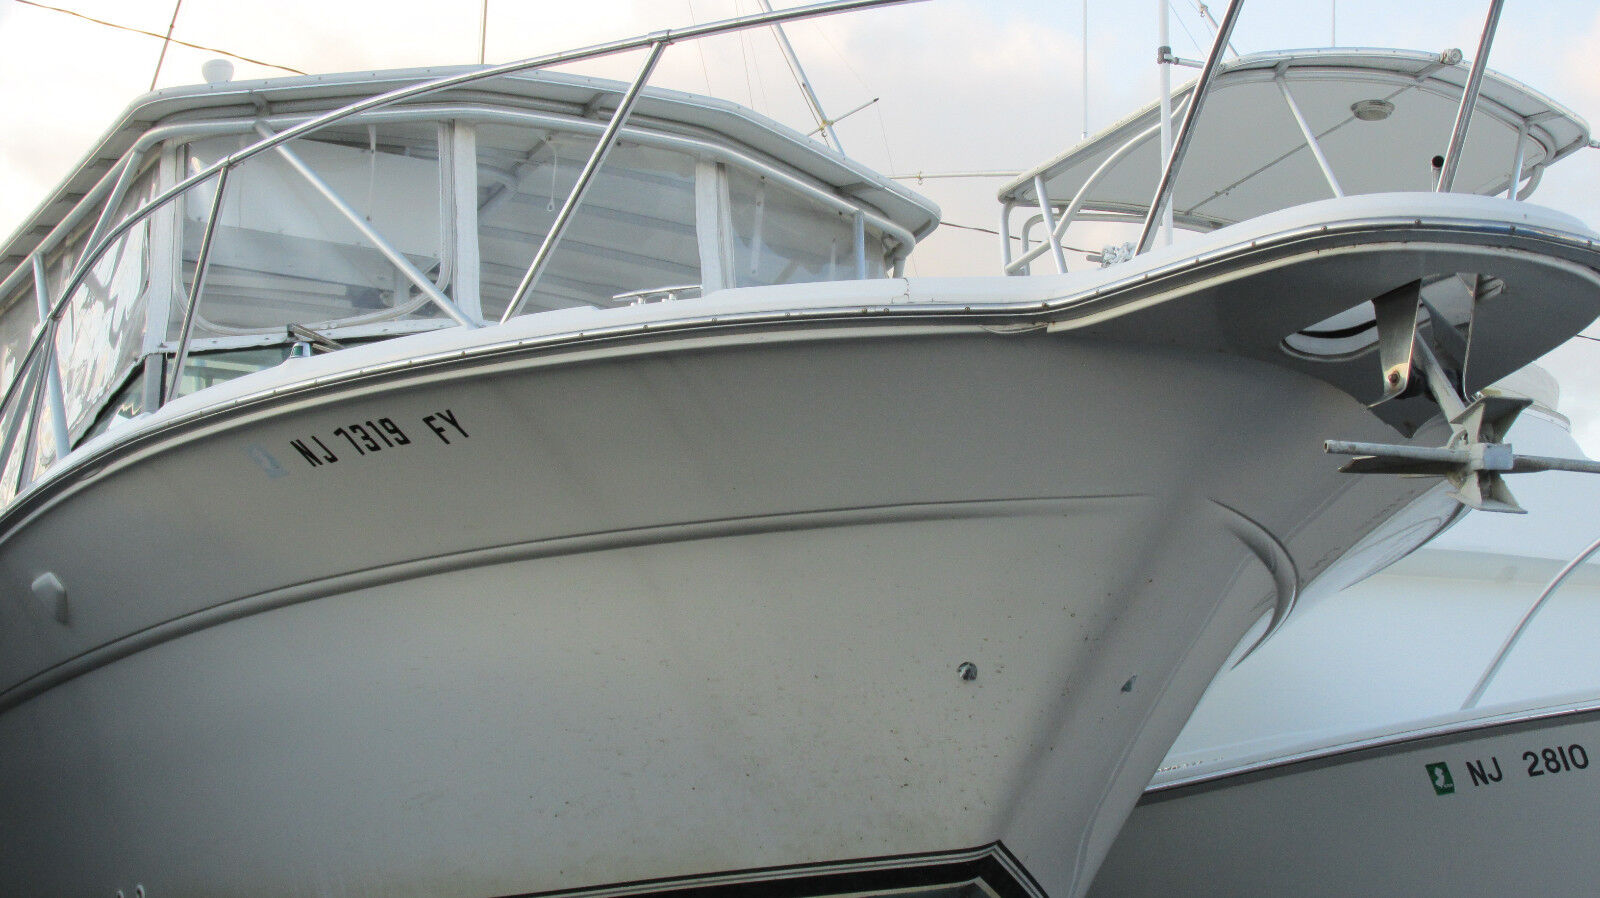 31' Sport Fishing / Cruising Surveyed Appraised Partial Trades Considered